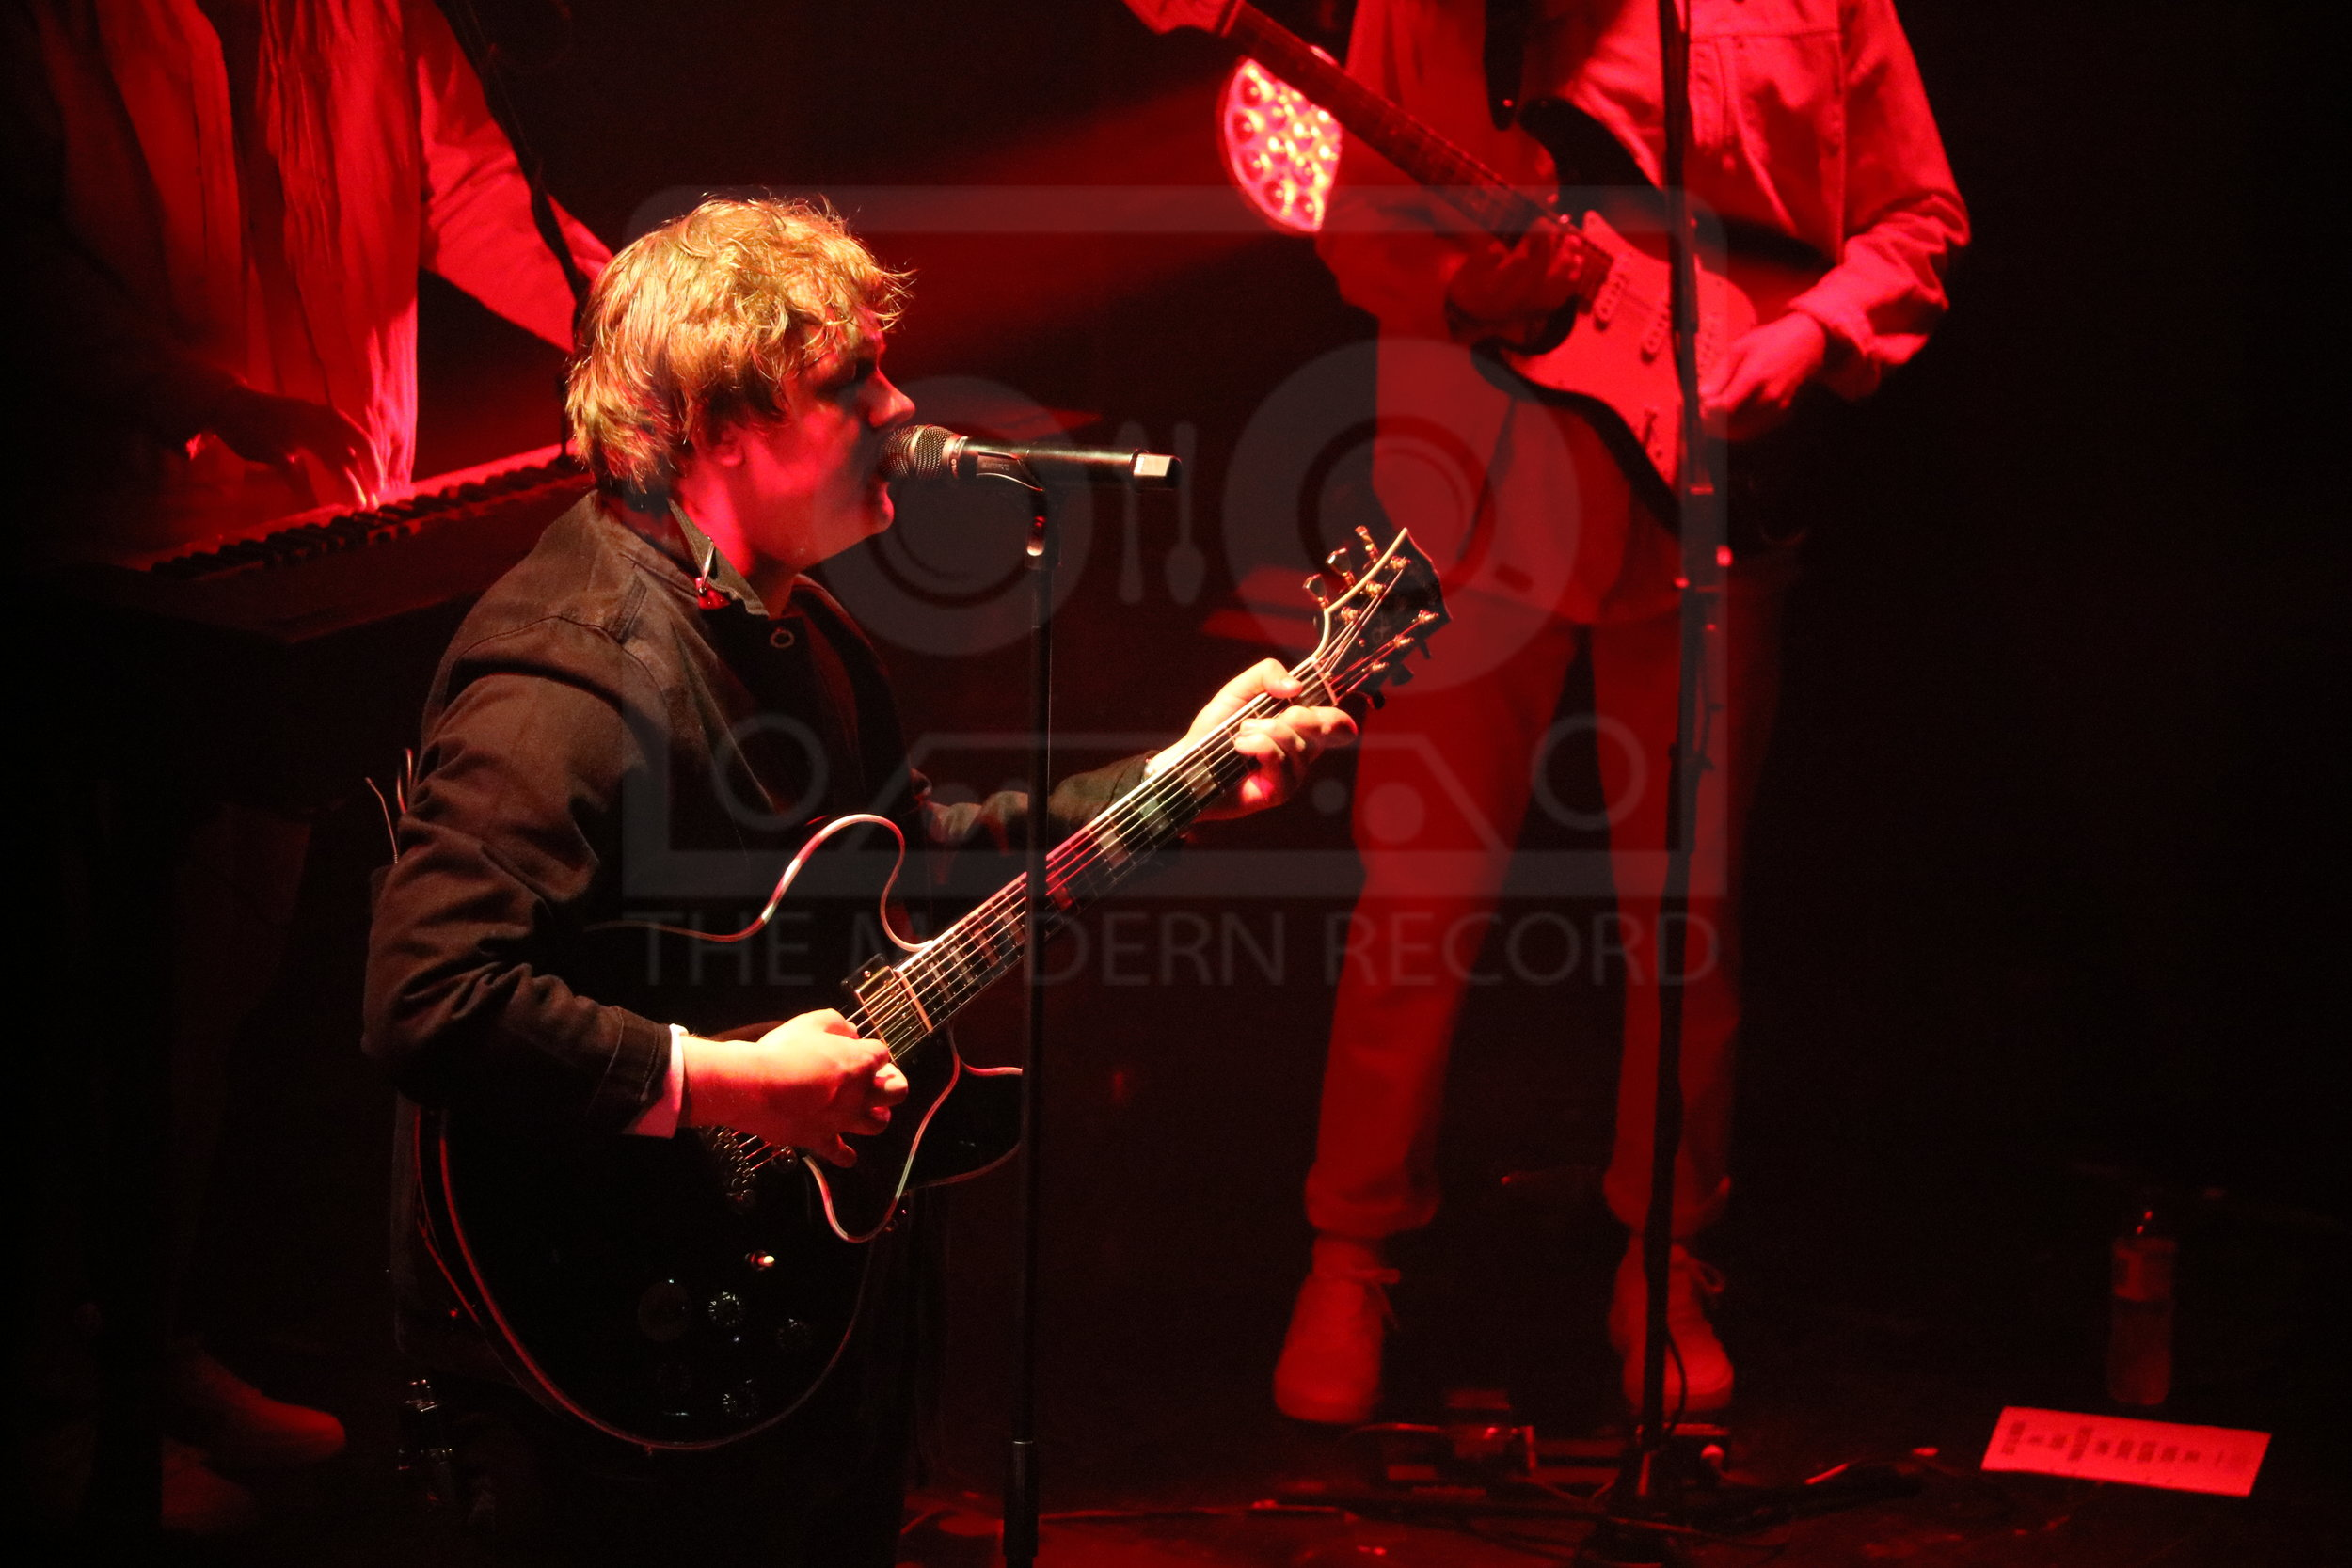 LEWIS CAPALDI PERFORMING AT FAT SAMES DUNDEE - 17.05.2019  PICTURE BY: COREY MCKAY PHOTOGRAPHY